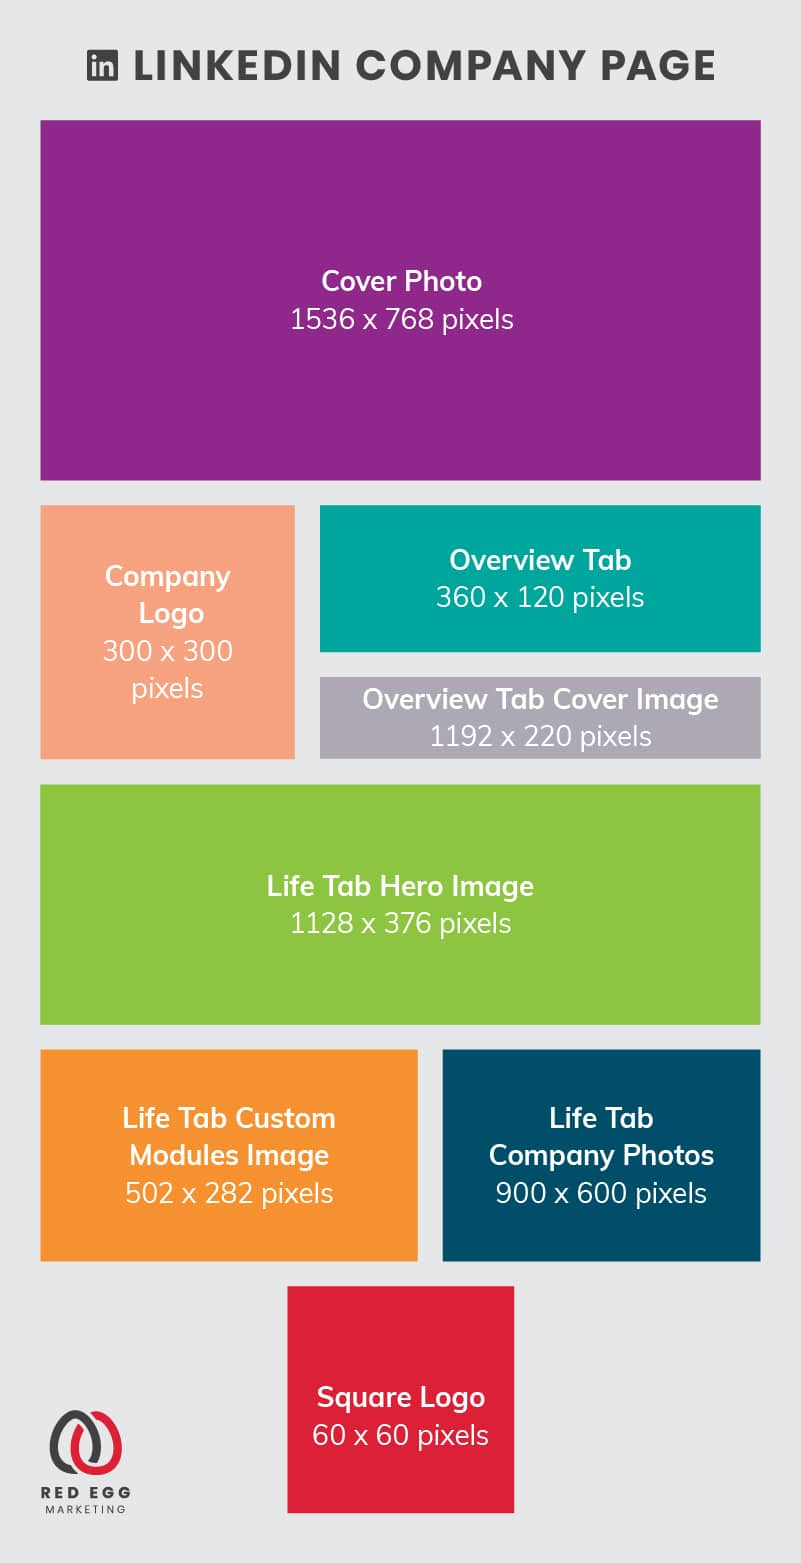 Social media size guide graphics for linked in company page images